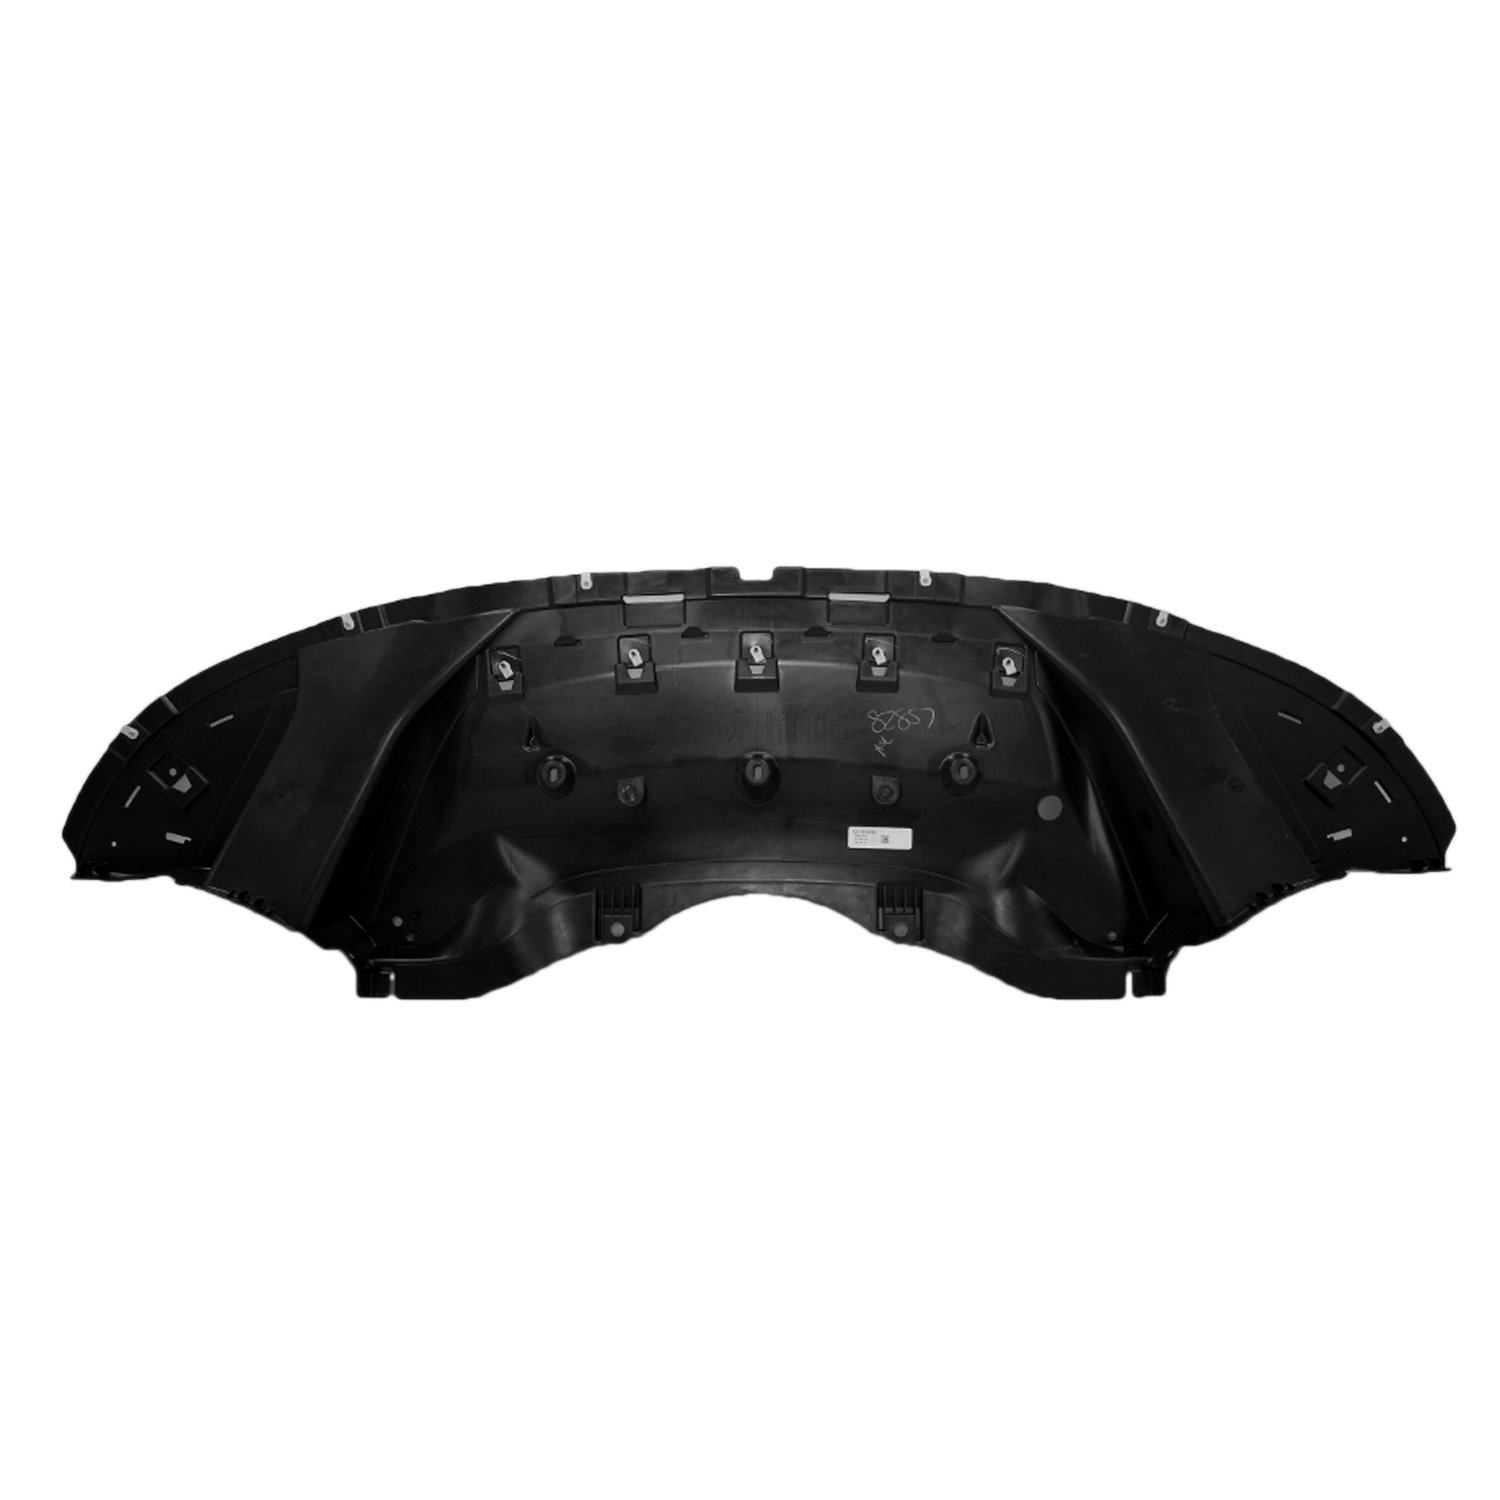 CPP Replacement Engine Splash Shield CH1228129 for 2015-2017 Dodge Charger